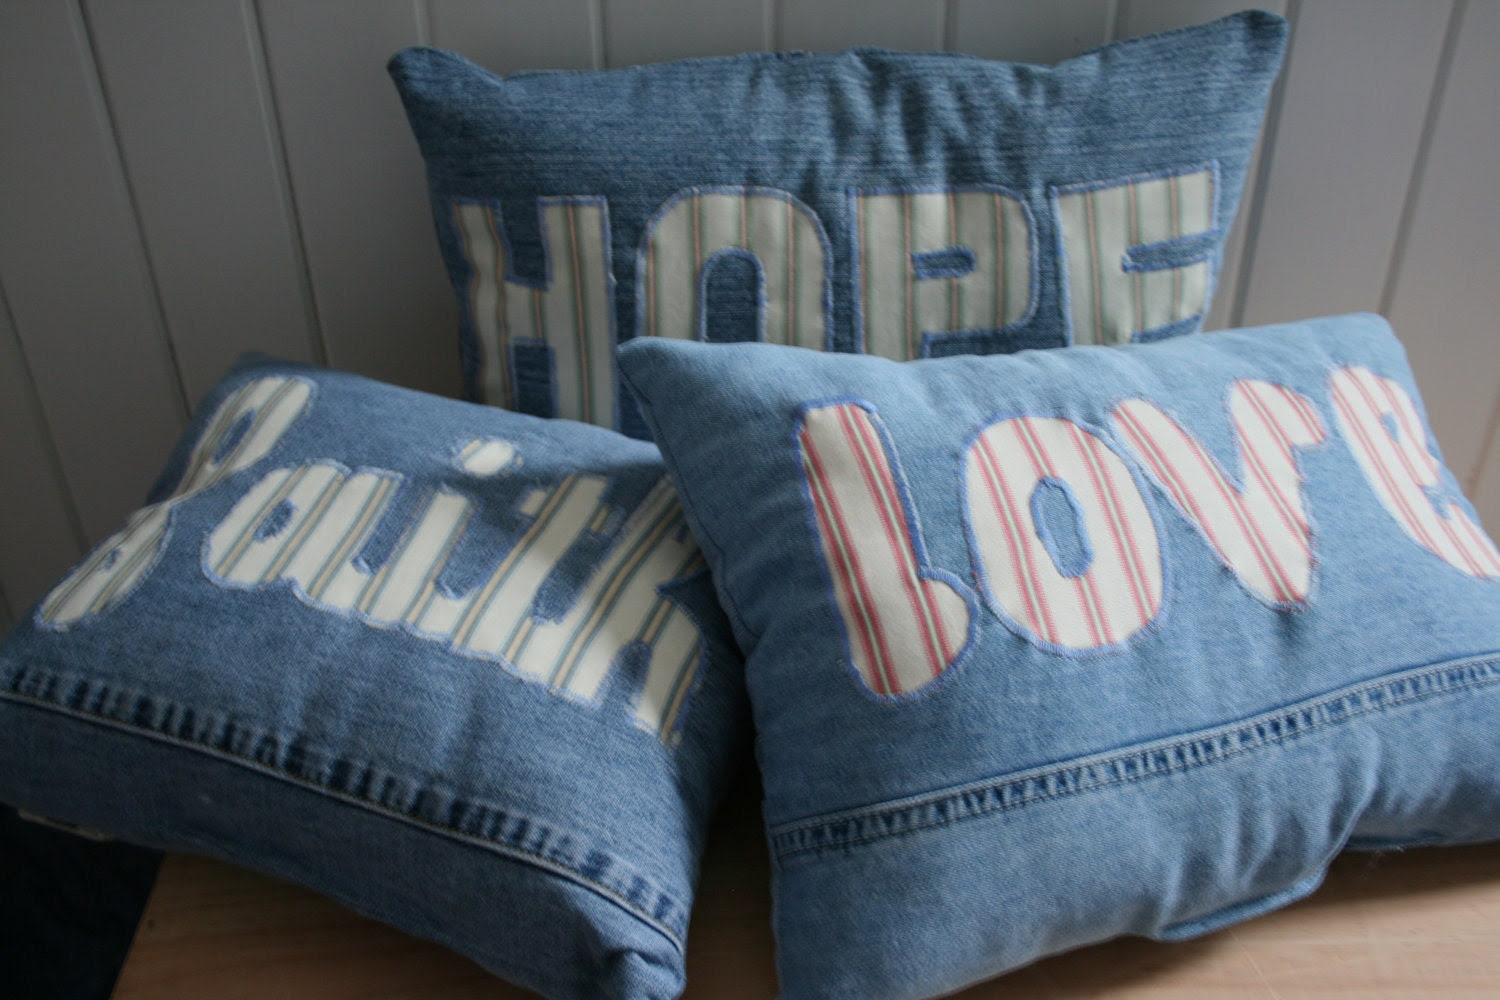 set of three denim pillows, faith/hope/love pillows, OOAK